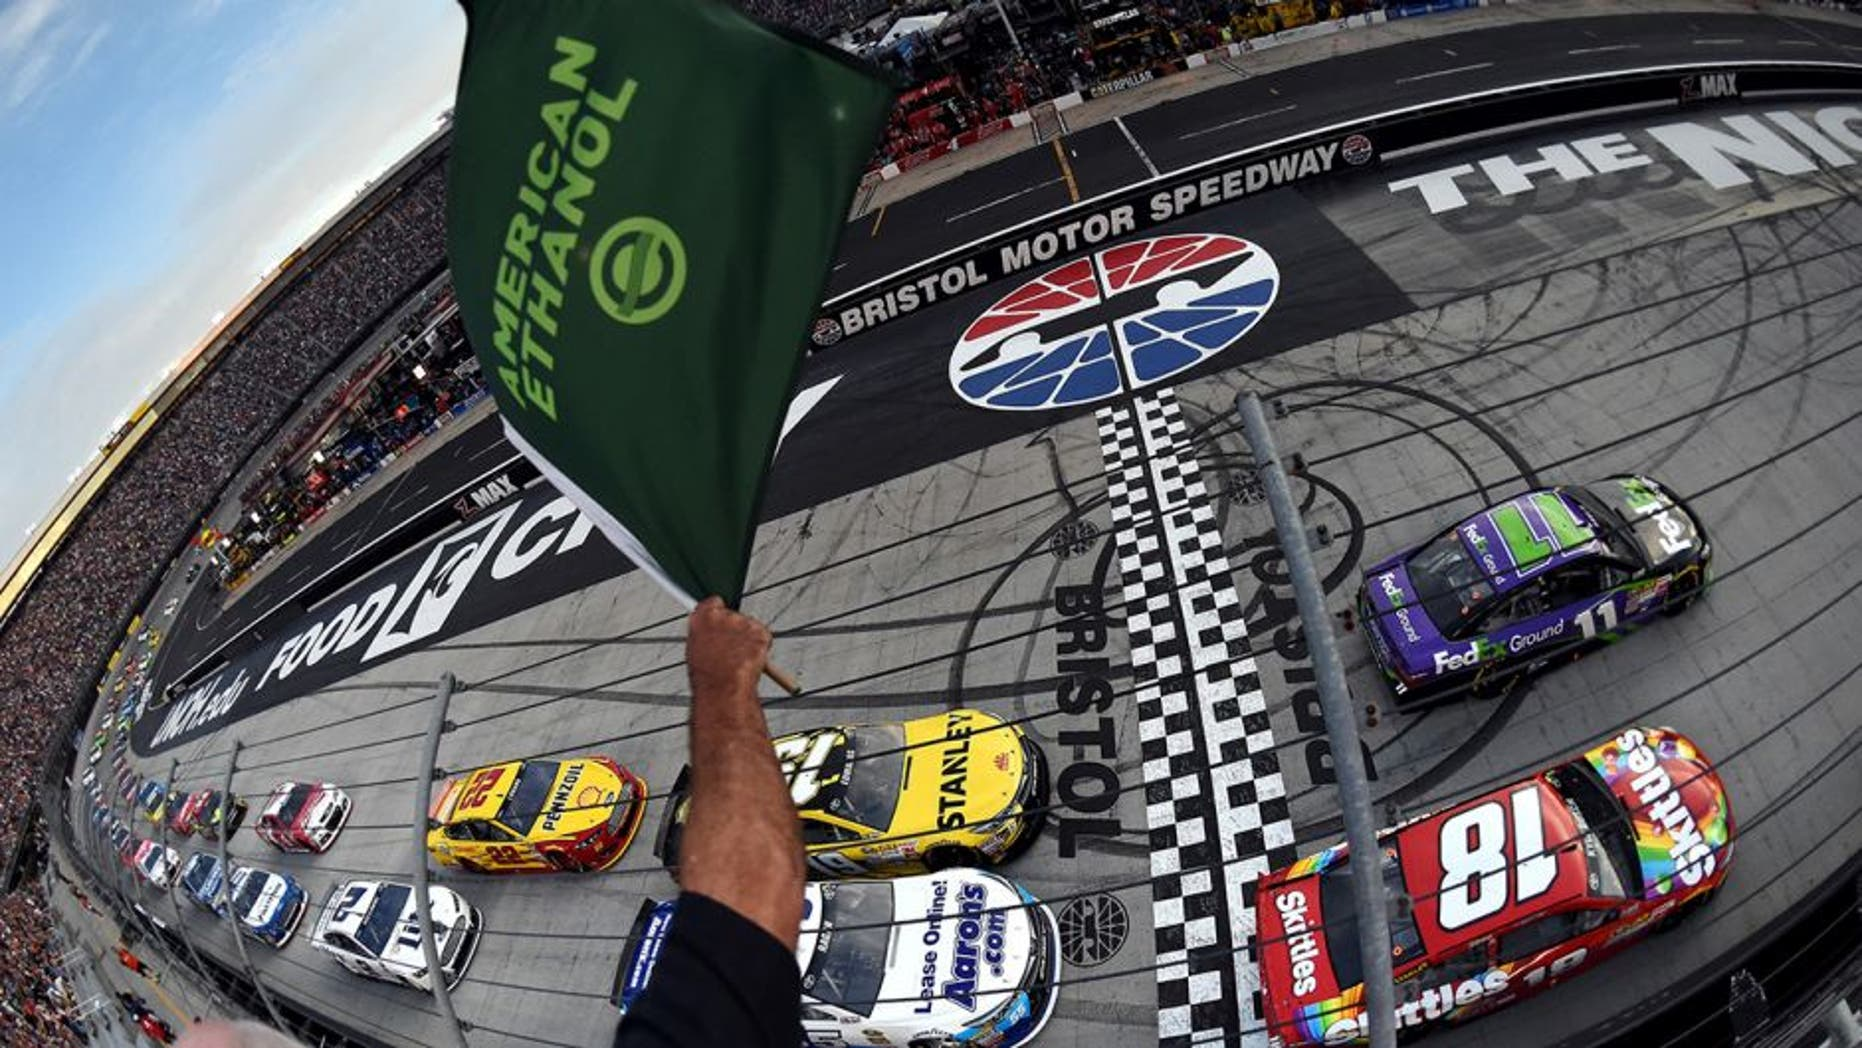 BRISTOL, TN - AUGUST 22: Denny Hamlin, driver of the #11 FedEx Ground Toyota, and Kyle Busch, driver of the #18 Skittles Toyota, lead the field through the green flag to start the NASCAR Sprint Cup Series IRWIN Tools Night Race at Bristol Motor Speedway on August 22, 2015 in Bristol, Tennessee. (Photo by Rainier Ehrhardt/NASCAR via Getty Images)